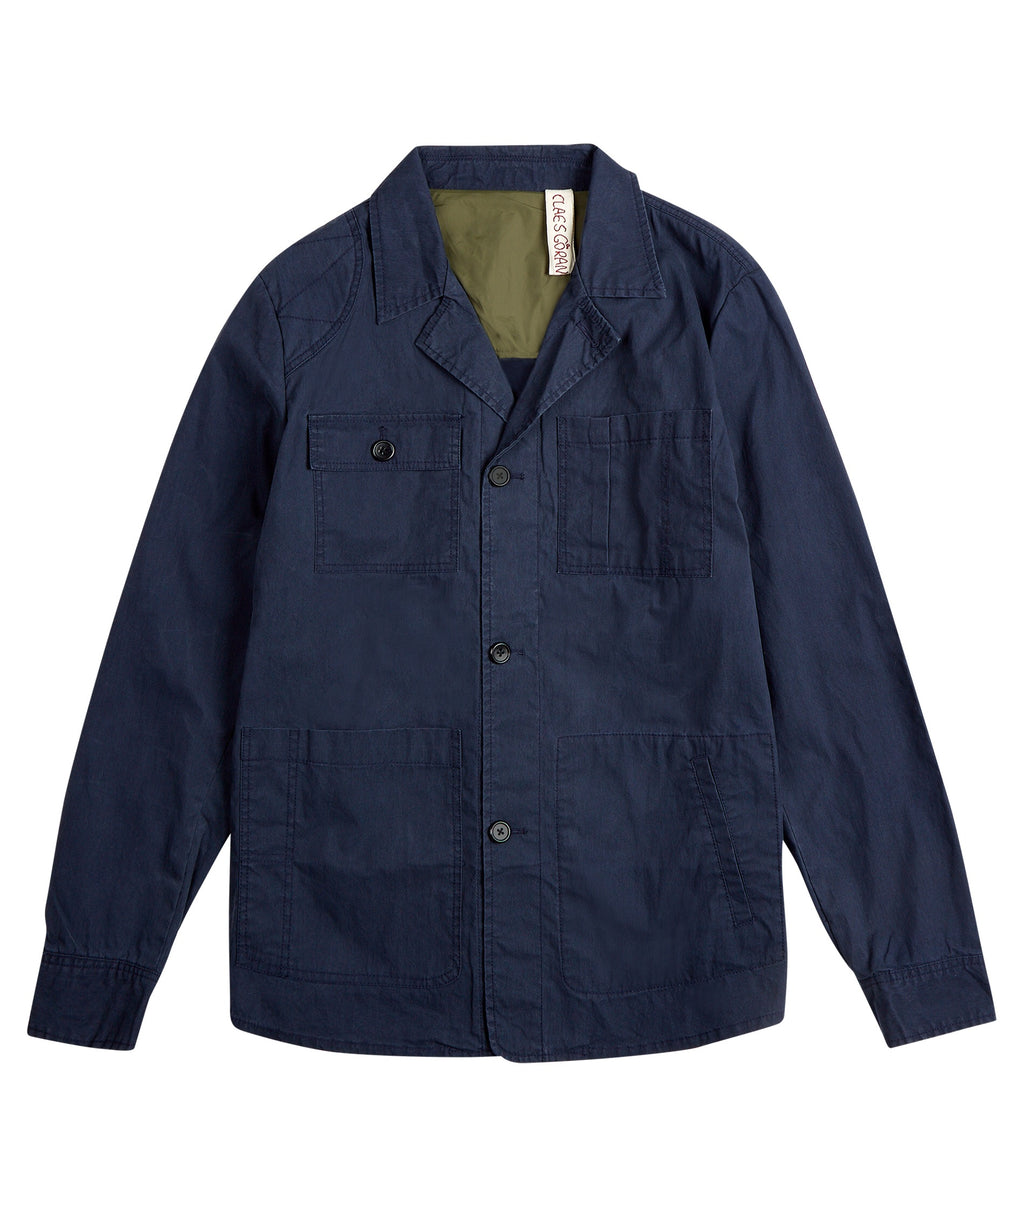 Claes Goran Blue Mood Jacket - LAST SIZE REDUCED!!